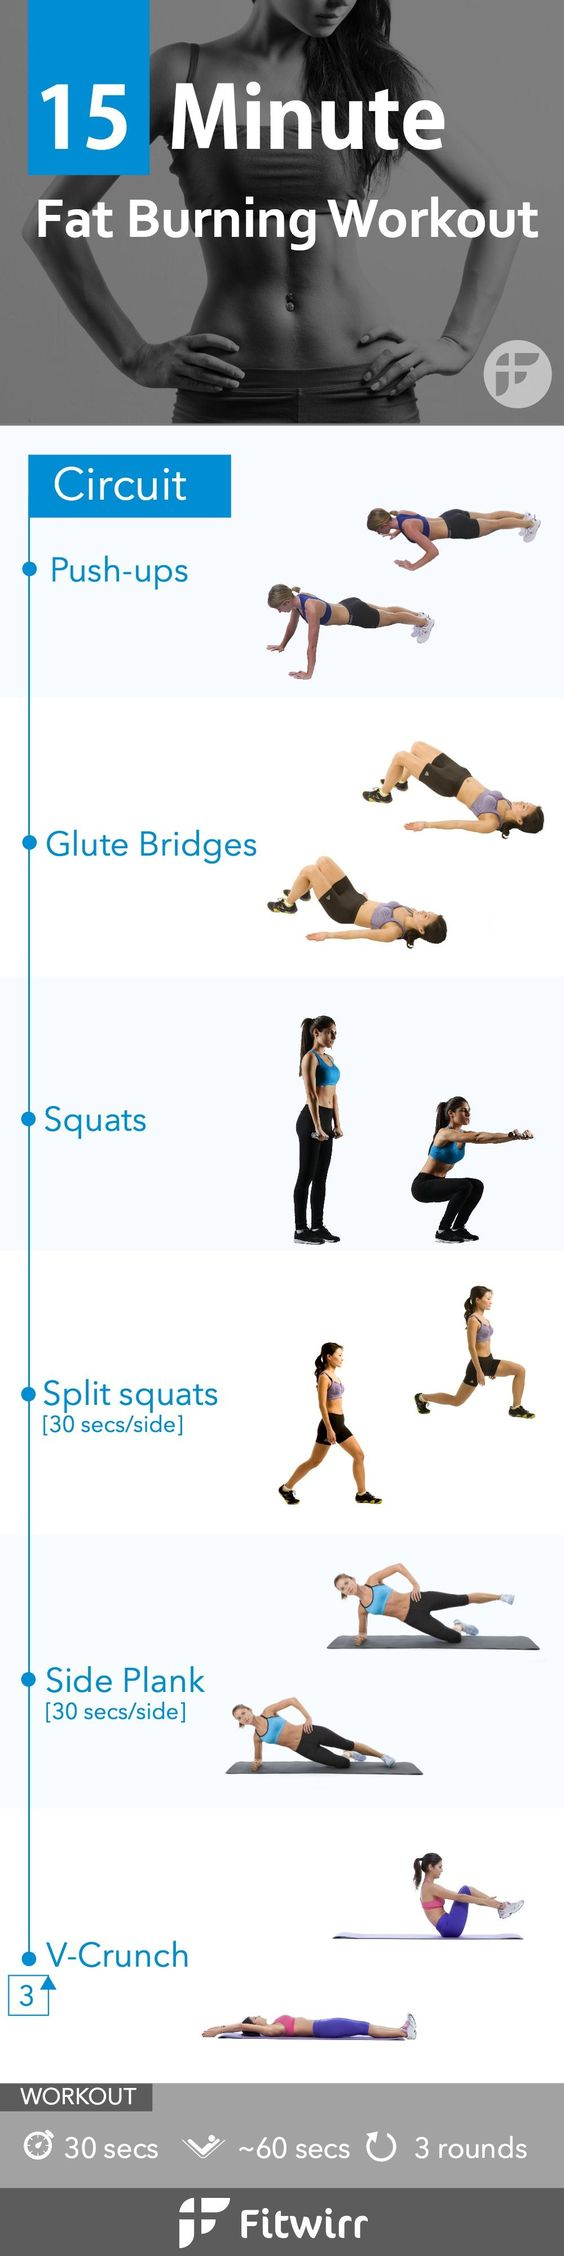 Need a quick workout you can do at home or in your hotel room? Here is a perfect workout for you. Hit it hard for 15 minutes to turn on your fat-burning hormone and get your body burning fat for up to 2 days. Sweat your way to your best body!